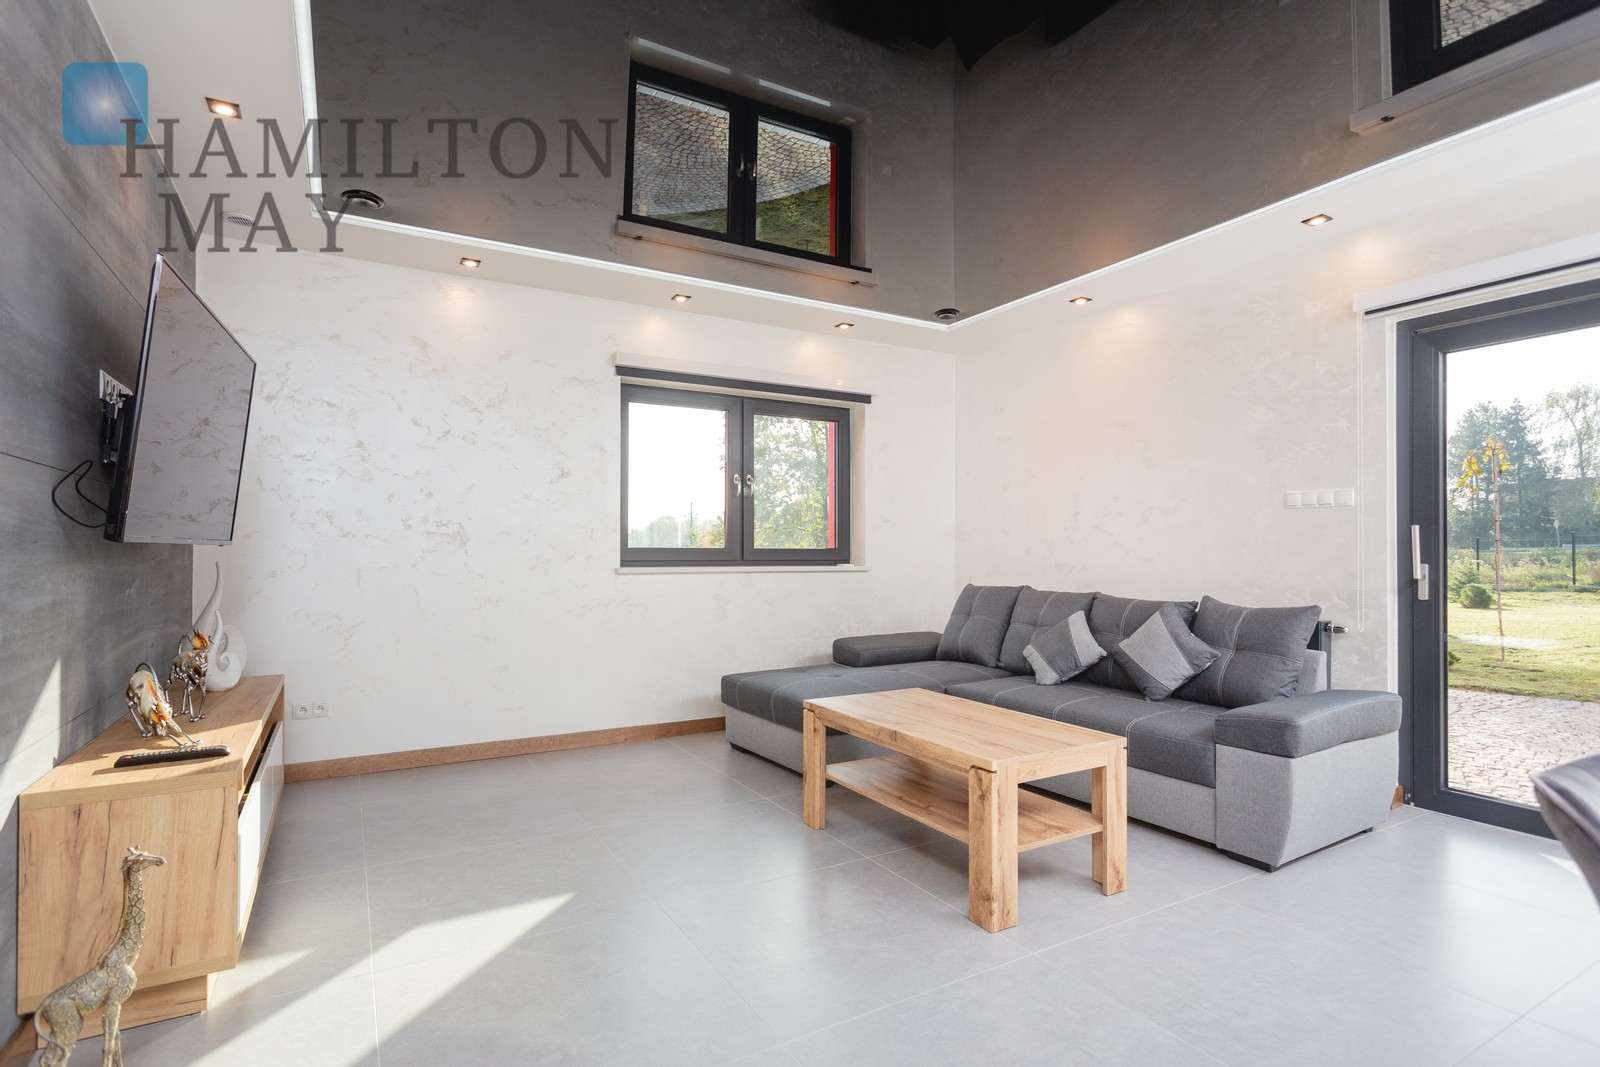 Detached house with four bedrooms, garage and terrace on a large plot Krakow for rent